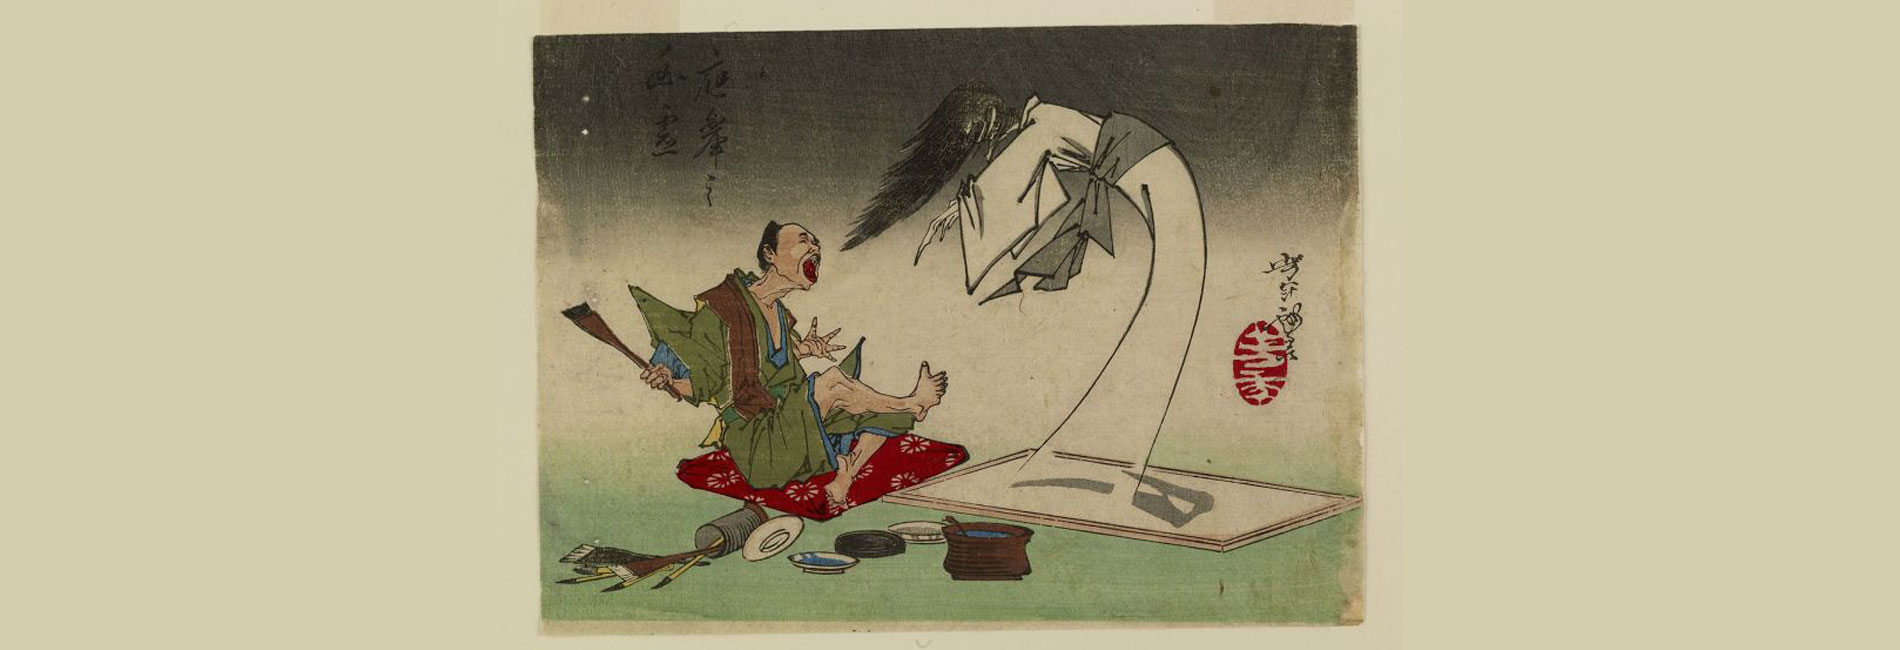 Oiwa and who else? – Looking beyond J-horror